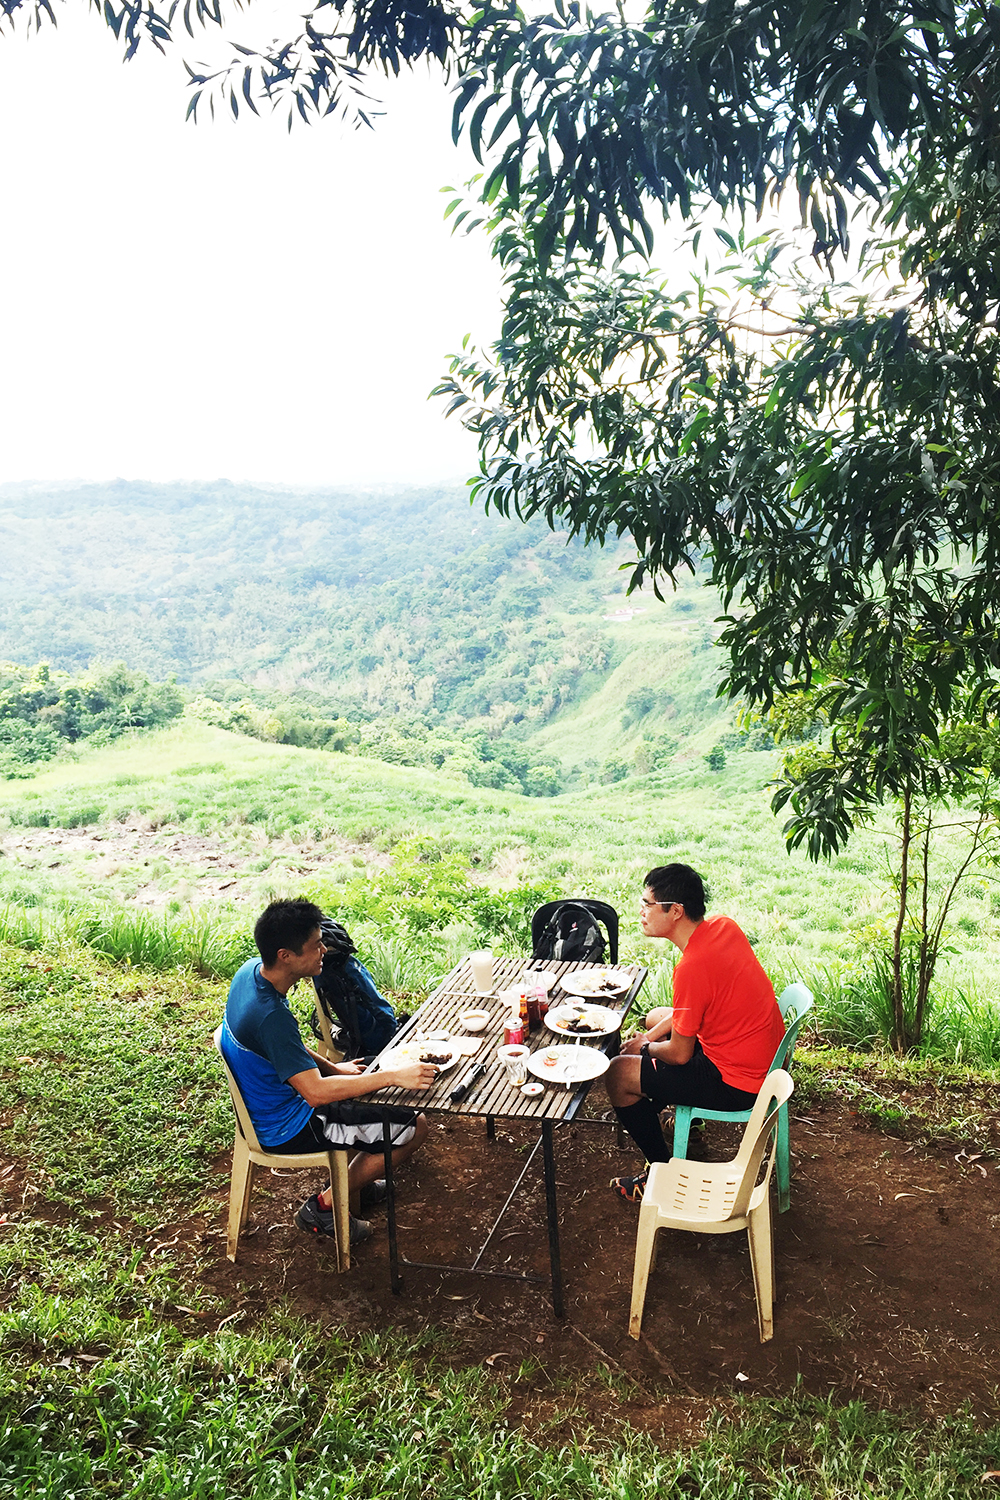 Two bikers eating breakfast overlooking mountains in Tanay Rizal